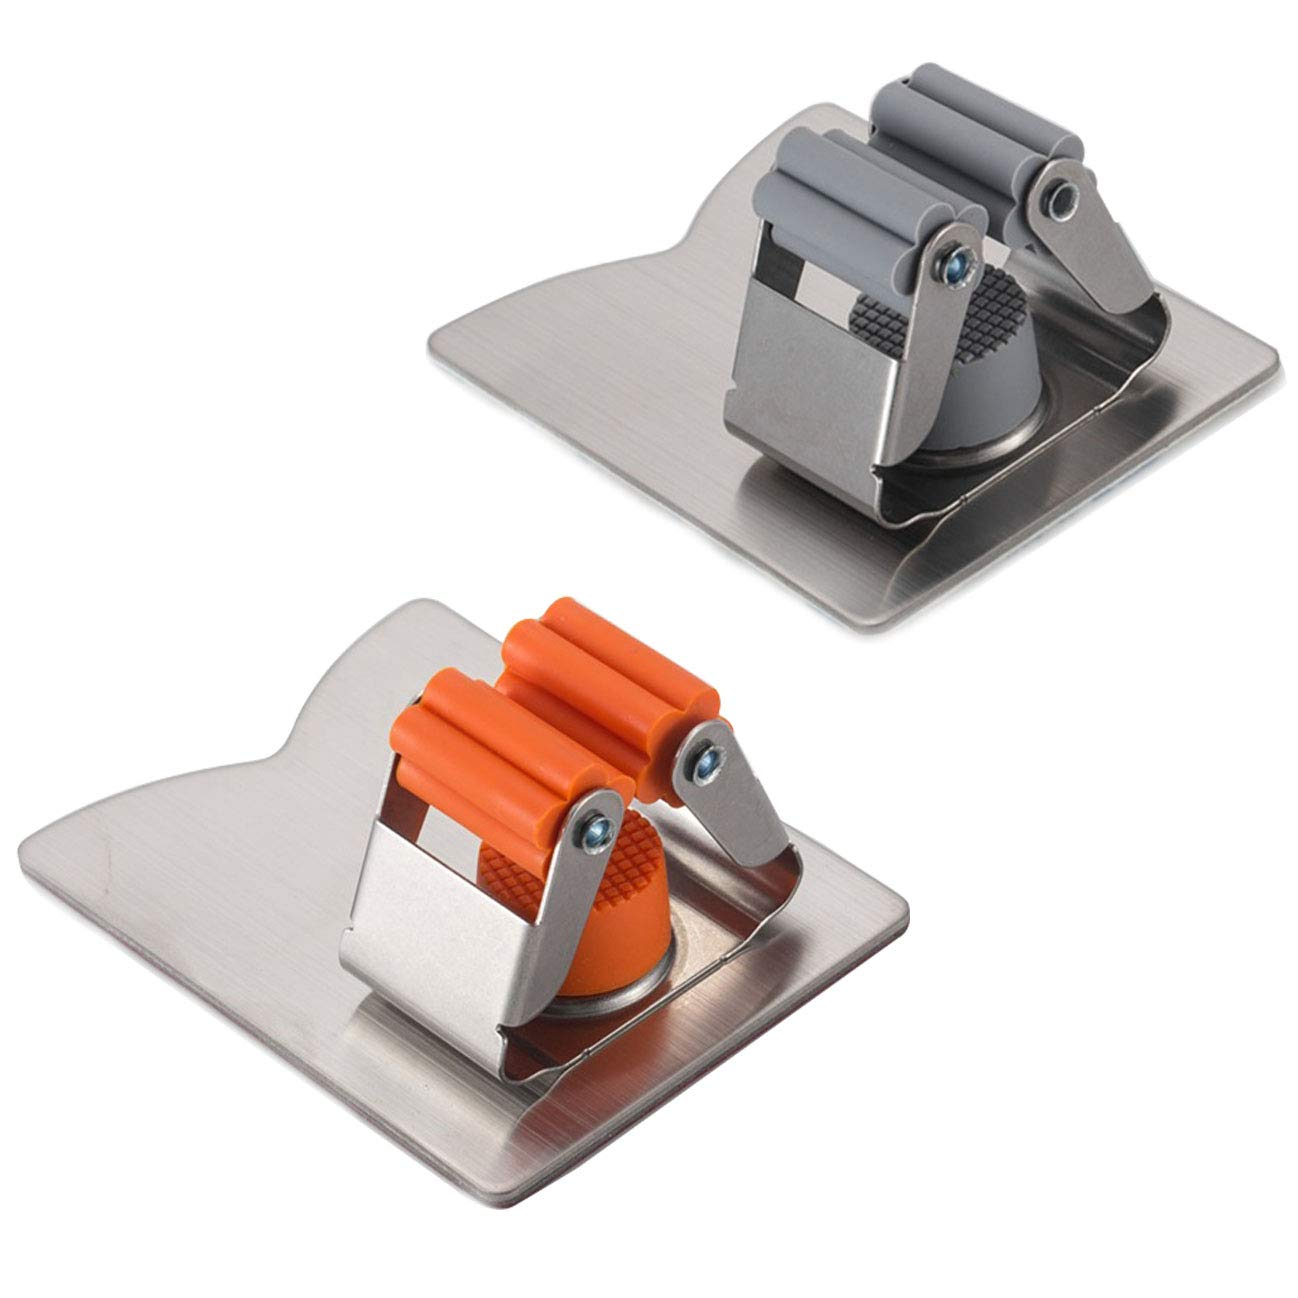 Onkuey Mop and Broom Holder, 2 Pack Wall Mounted Mop Broom Organizer Grippers, Stainless Steel Brushed